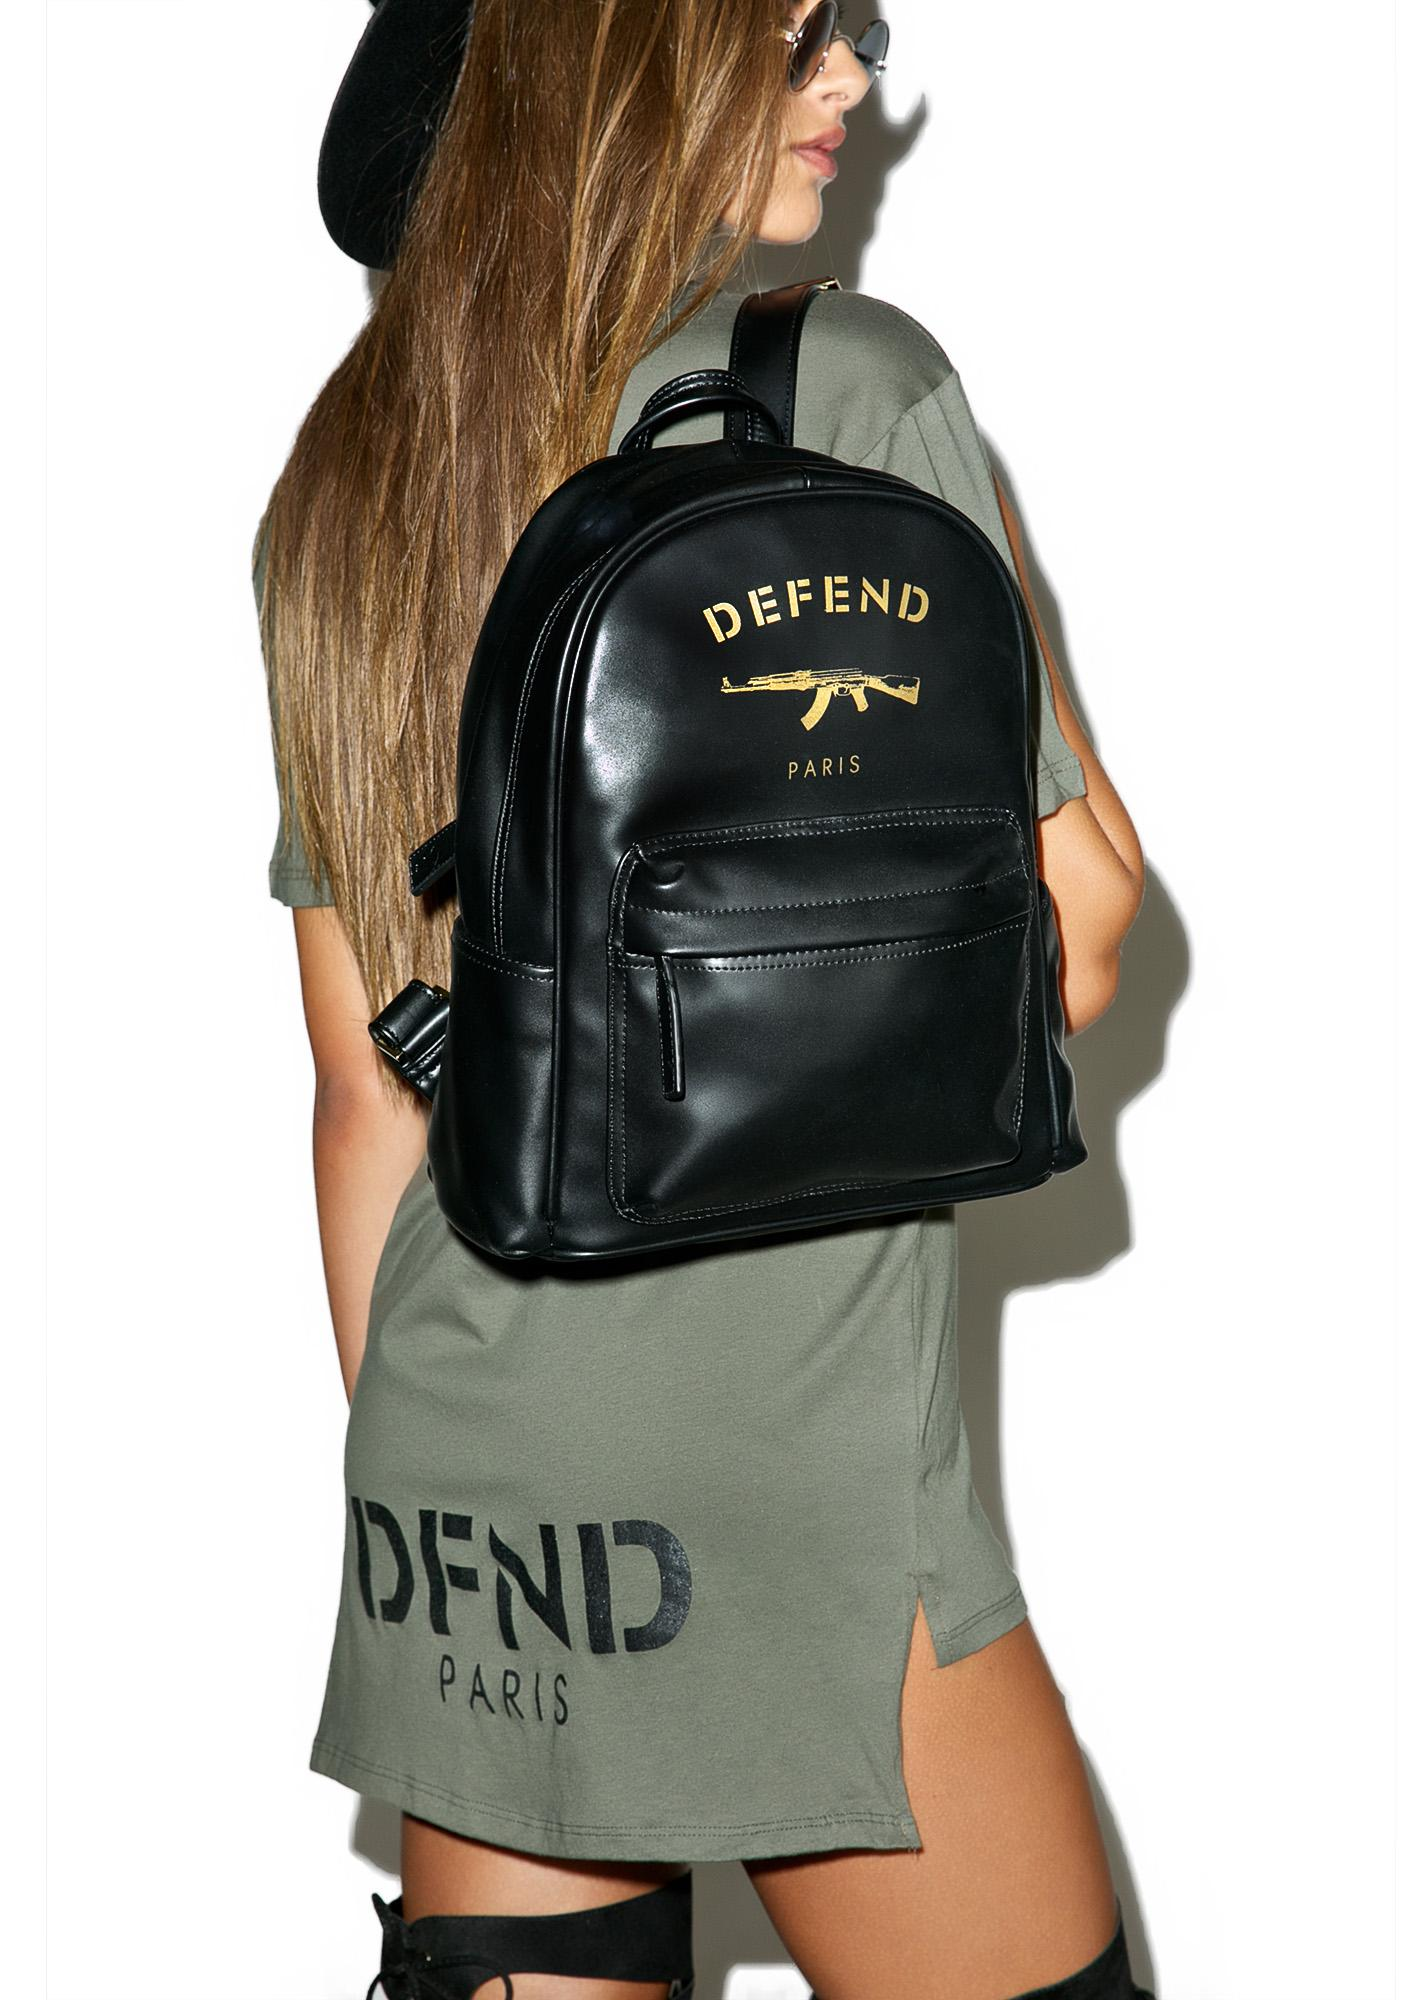 Defend Paris AK Backpack